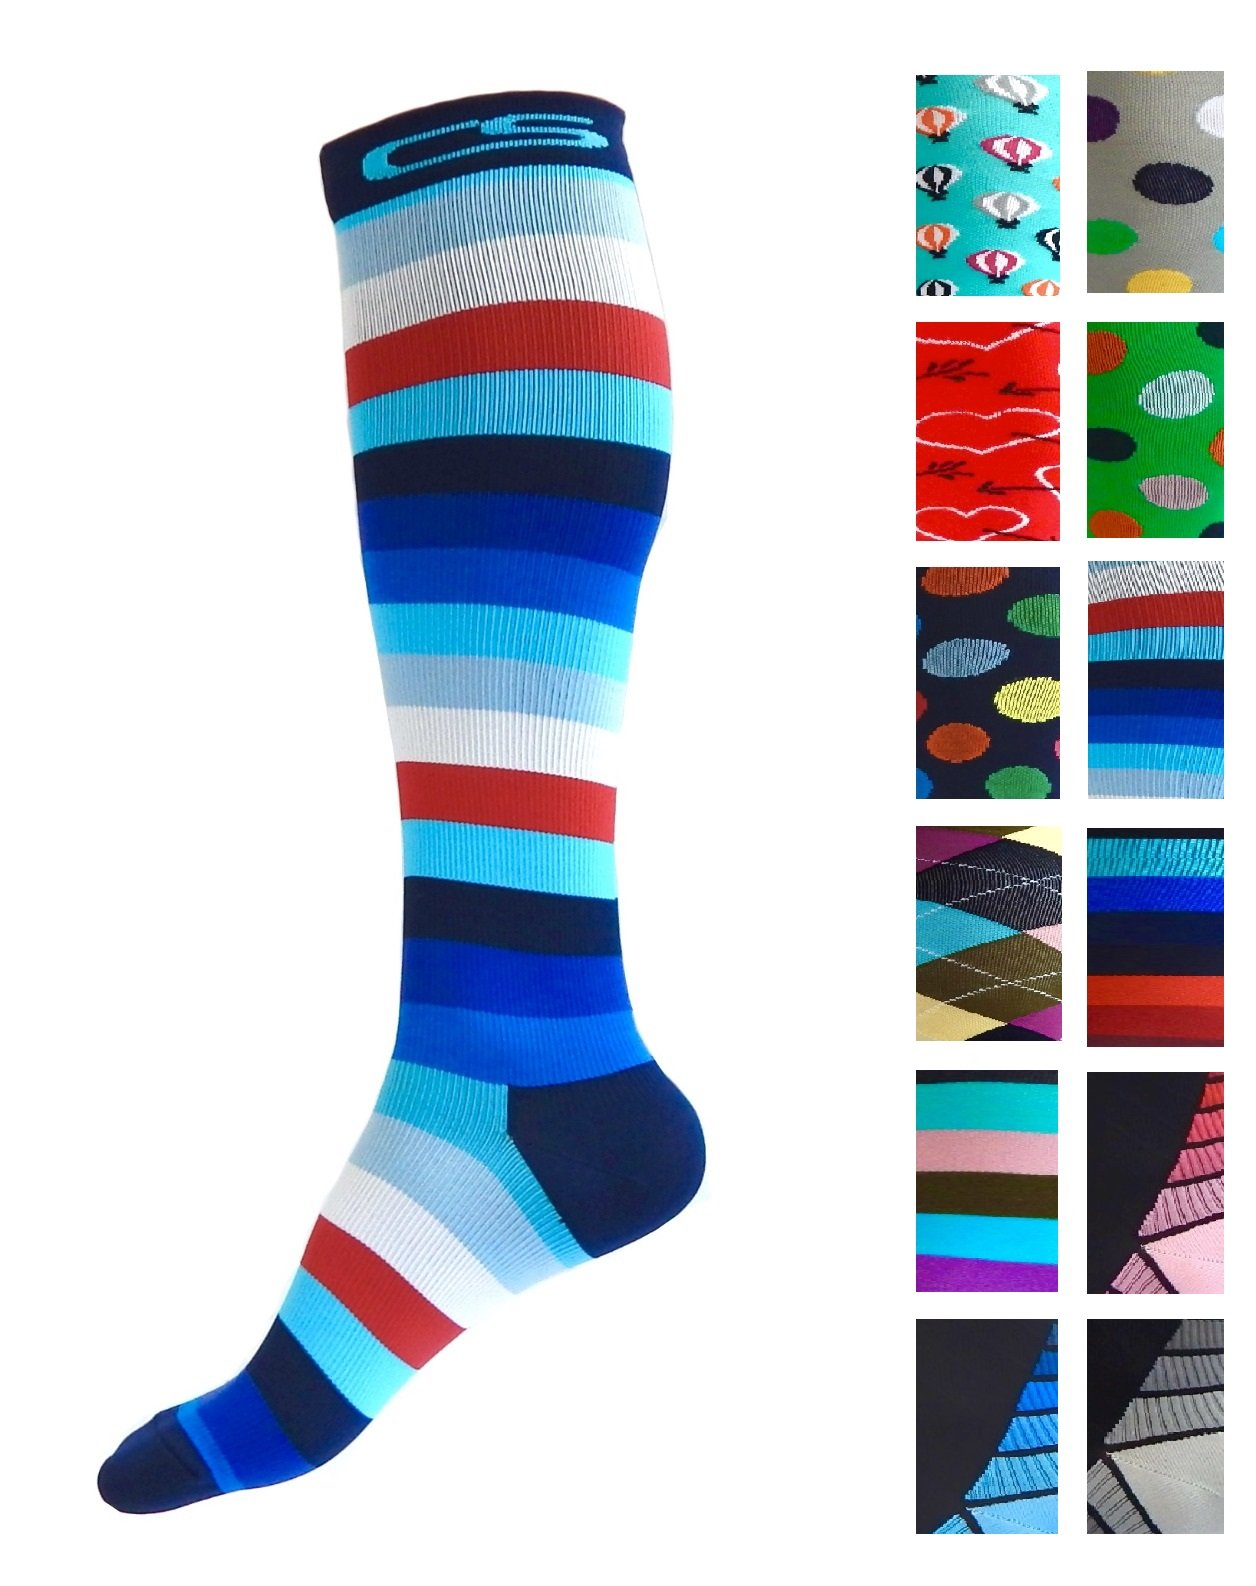 Compression Socks for Men & Women - BEST Graduated Athletic Fit for Running, Nurses, Shin Splints, Flight Travel, Maternity Pregnancy - Boost Stamina, Circulation & Recovery (Cool Stripes, S/M)